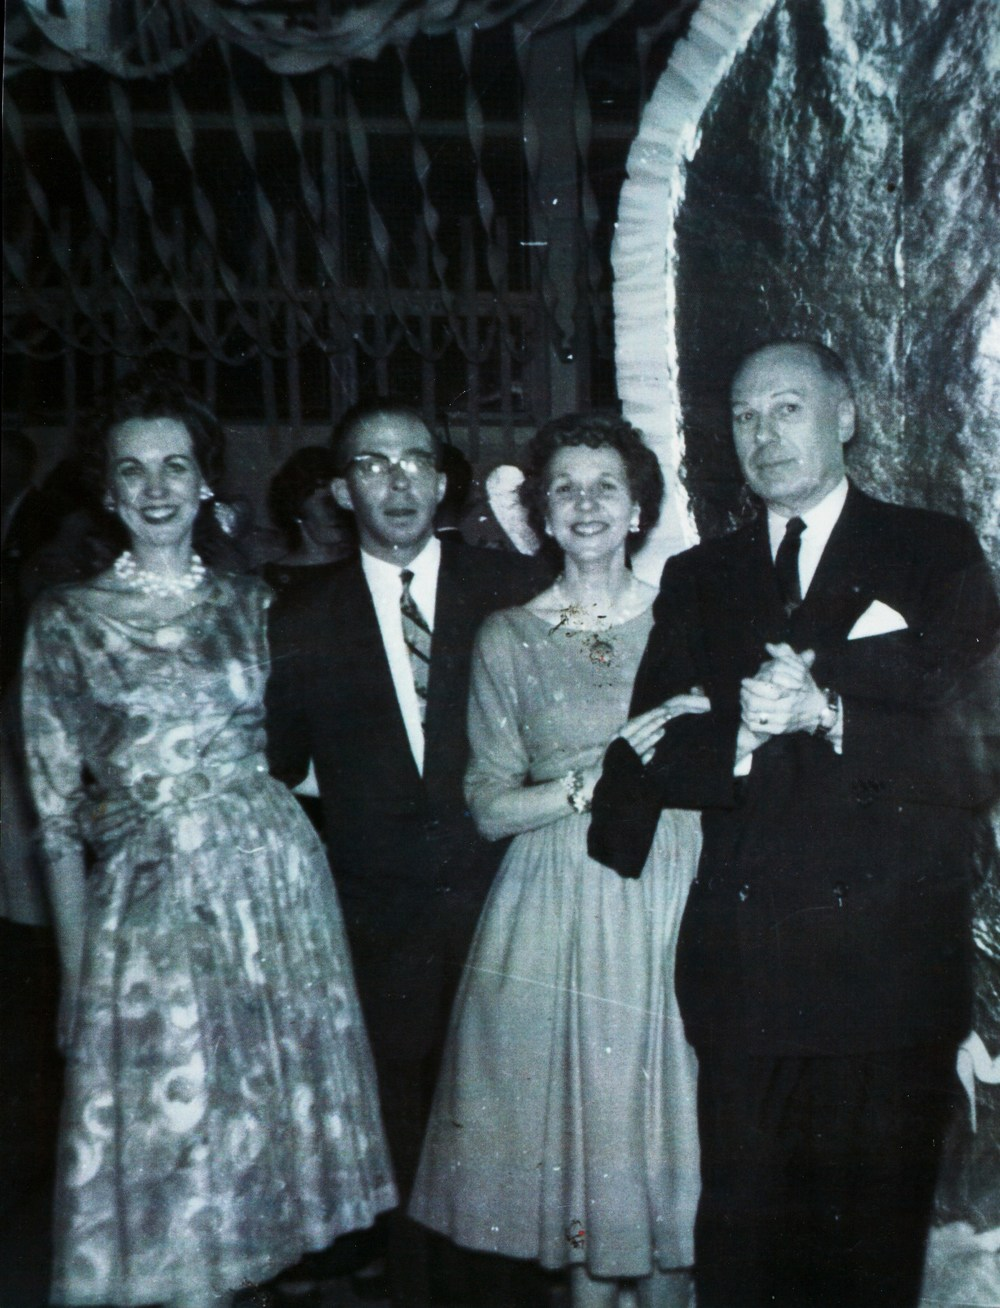 1962 Chaparones at high school formal, Lois Shatford, Bob Shatford, Helen Jones, Sally Jones